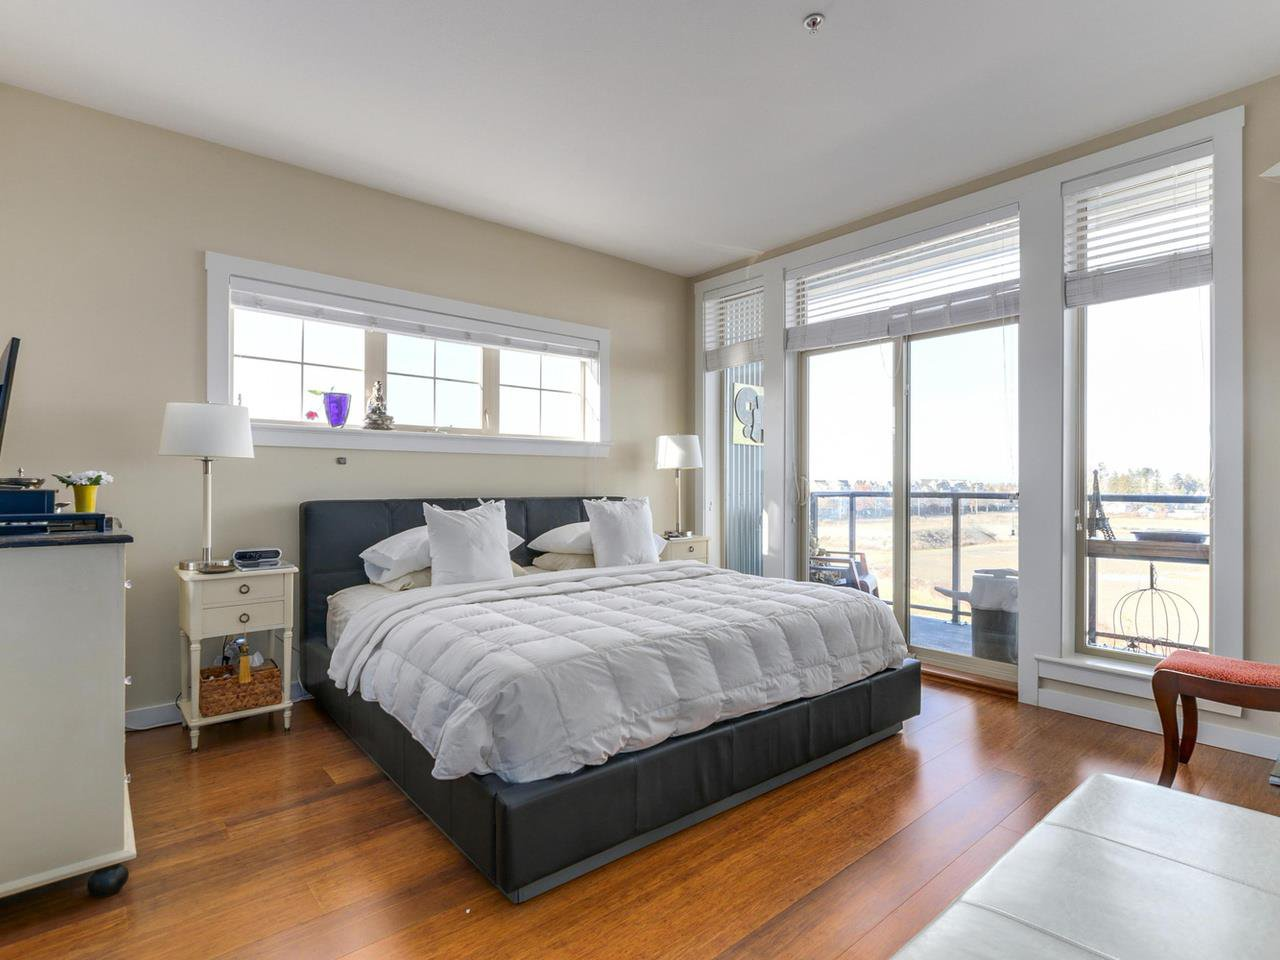 "Photo 13: Photos: 419 6233 LONDON Road in Richmond: Steveston South Condo for sale in ""LONDON STATION ONE"" : MLS®# R2133663"